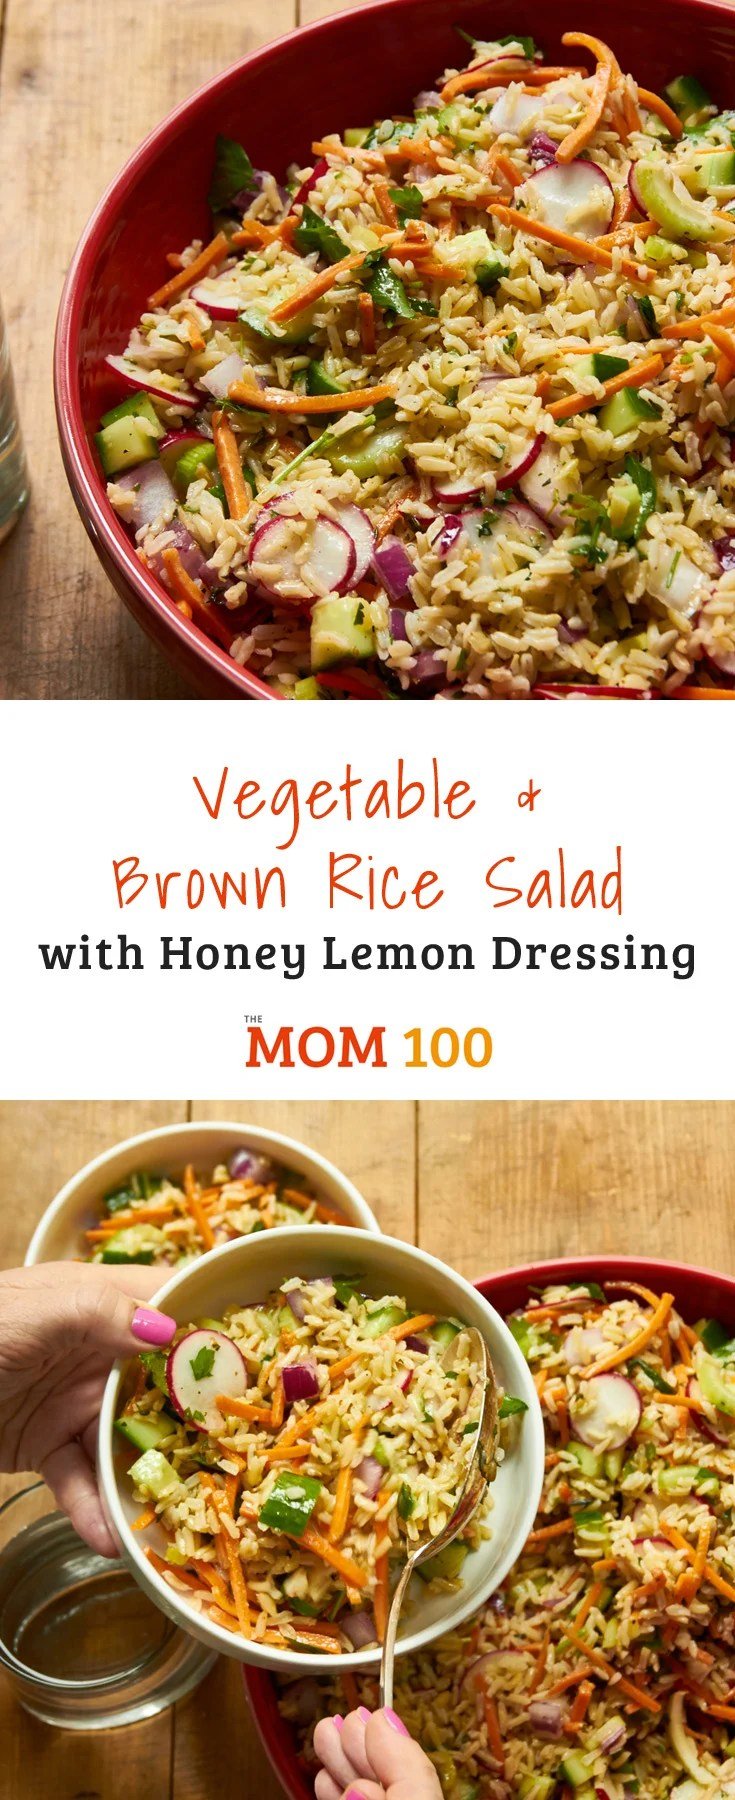 This brown rice salad recipe is the vegetarian side dish you\'re always looking for when you\'re hosting a crowd or going to a potluck.